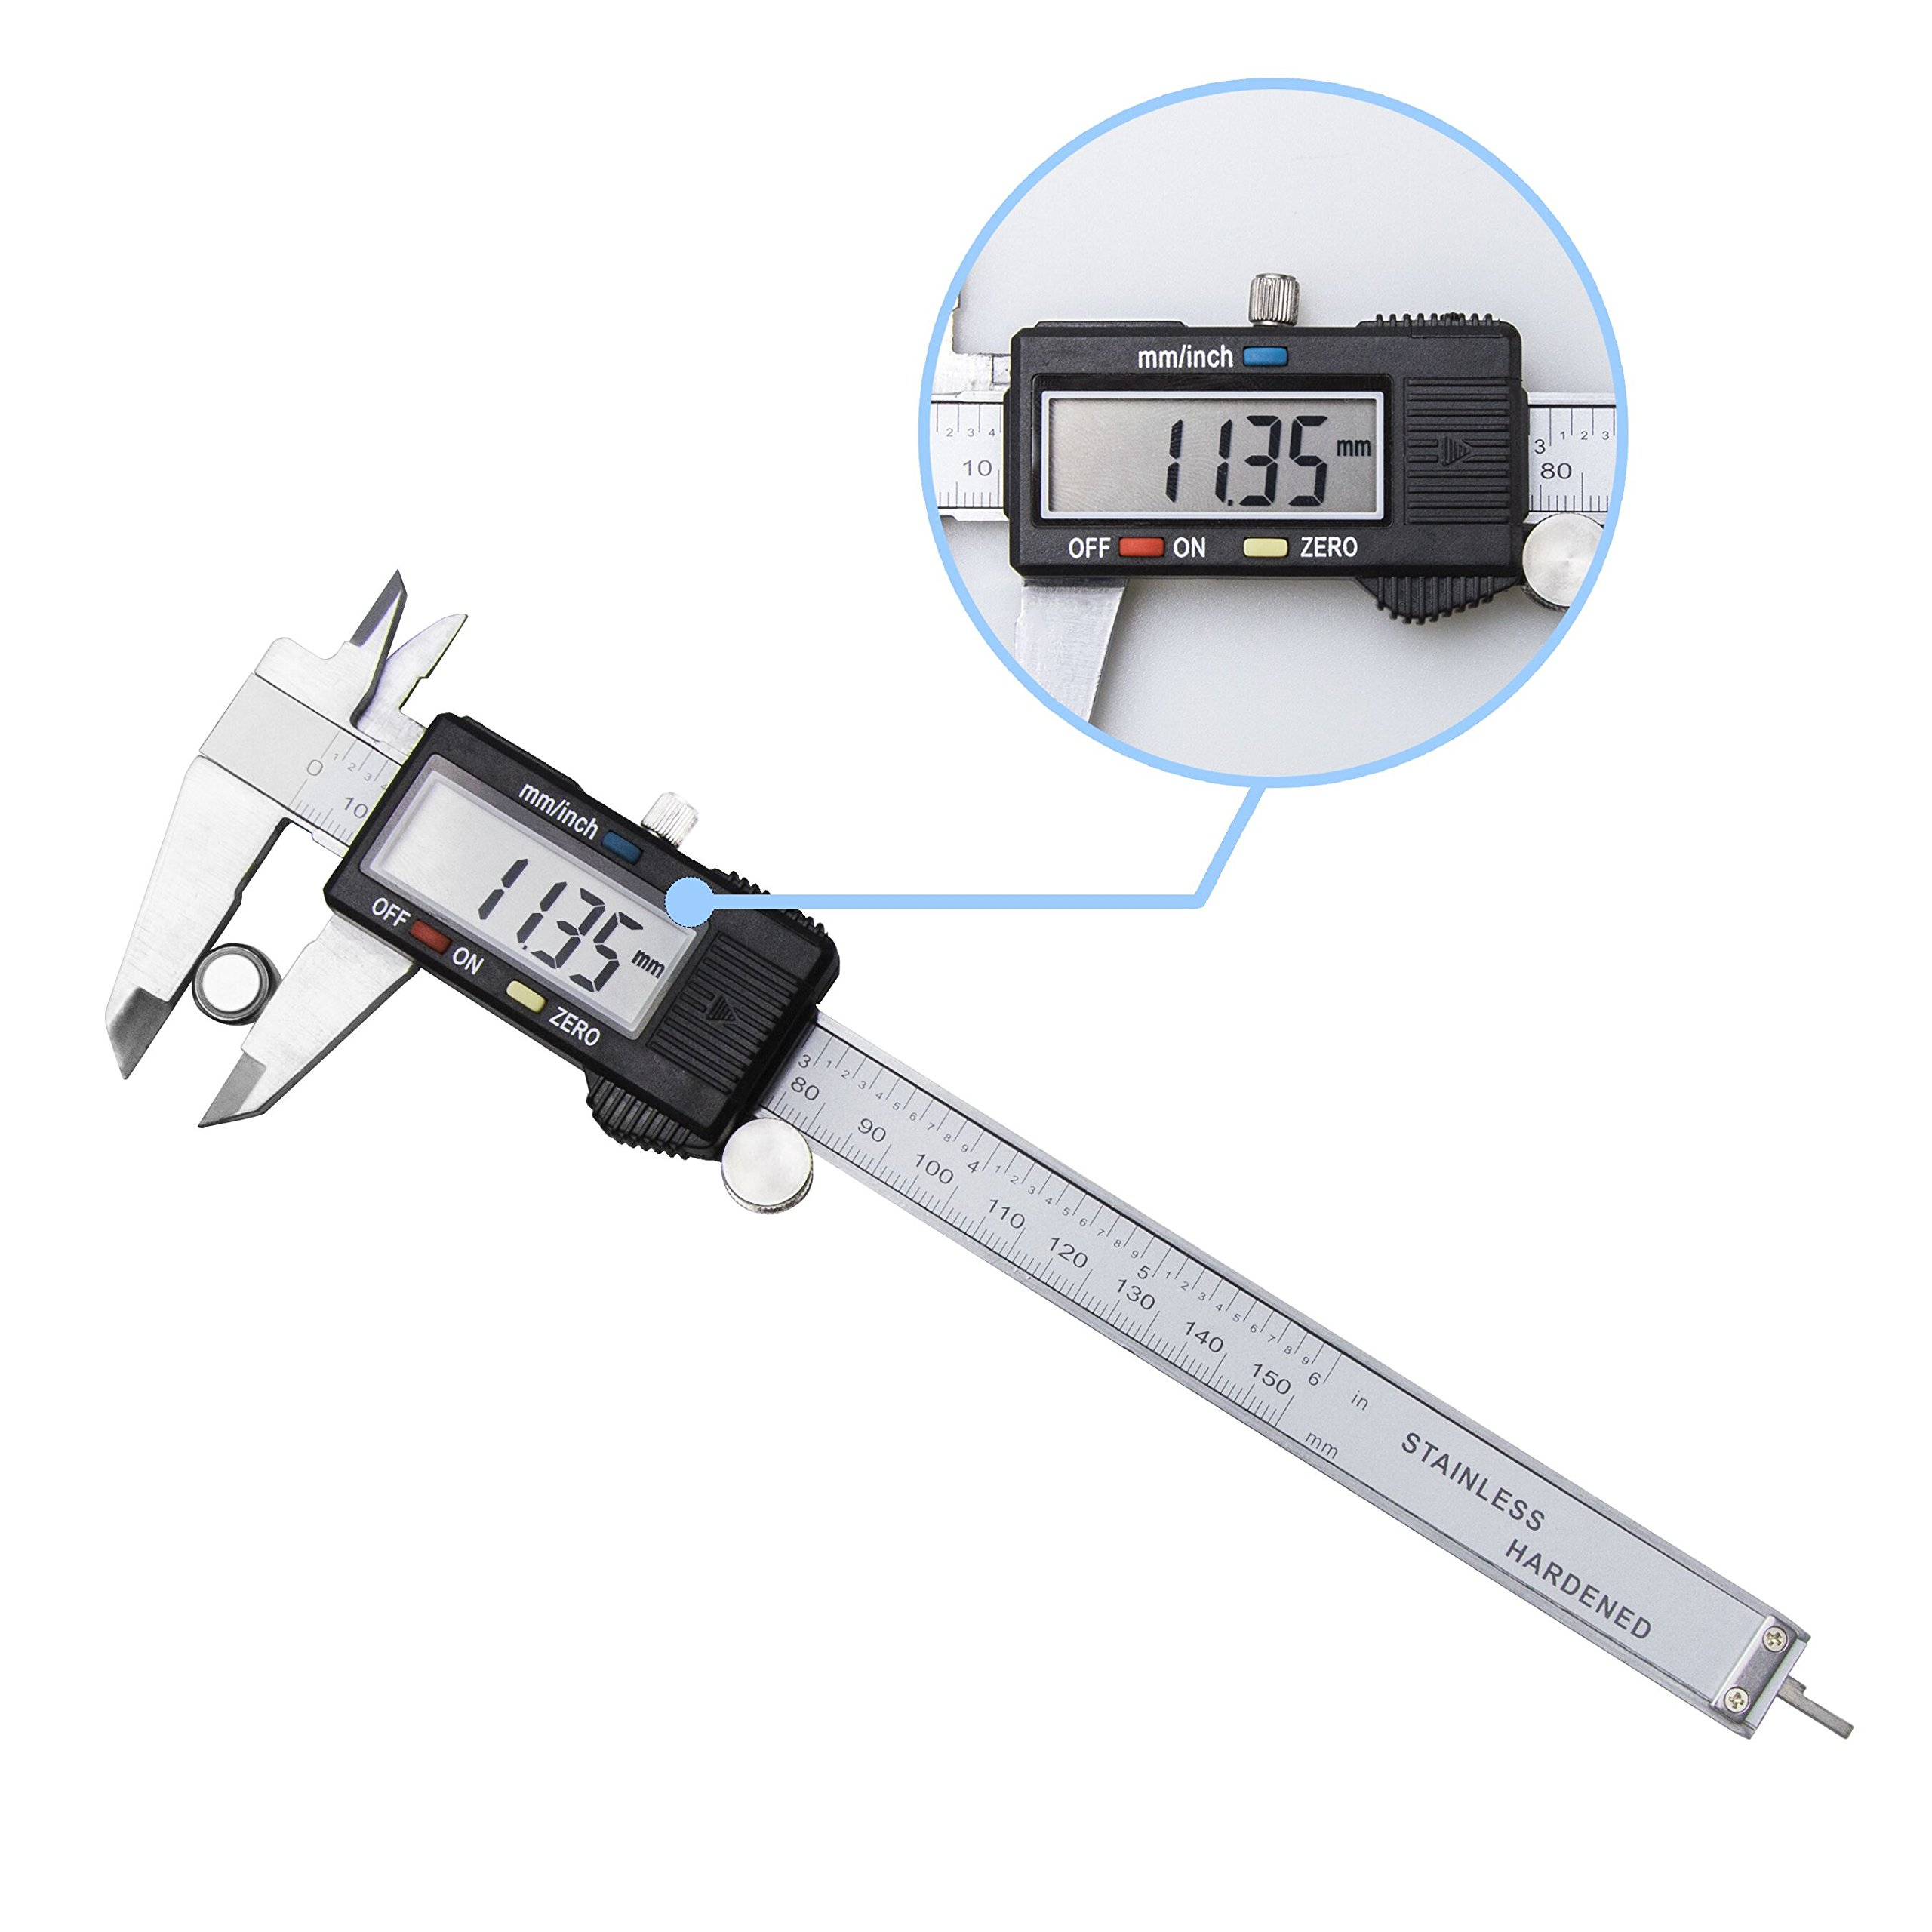 OROROW Precision 150mm/ 6inch Digital Electronic Gauge Stainless Steel Vernier Caliper Micrometer